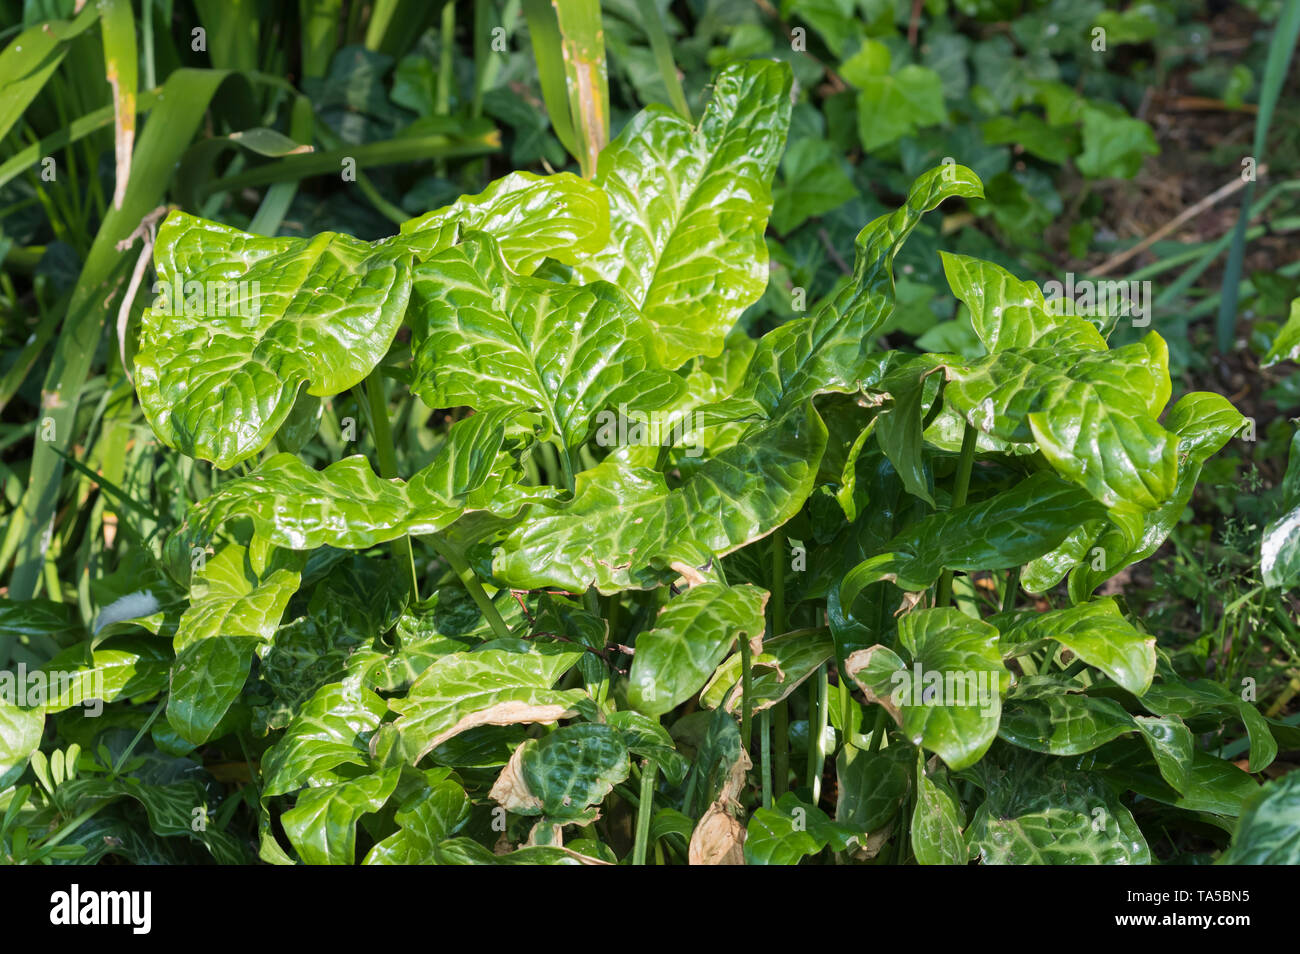 Arum italicum (Italian Arum) plant growing in a park, showing very glossy shiny leaves in Spring (May) in West Sussex, England, UK. - Stock Image